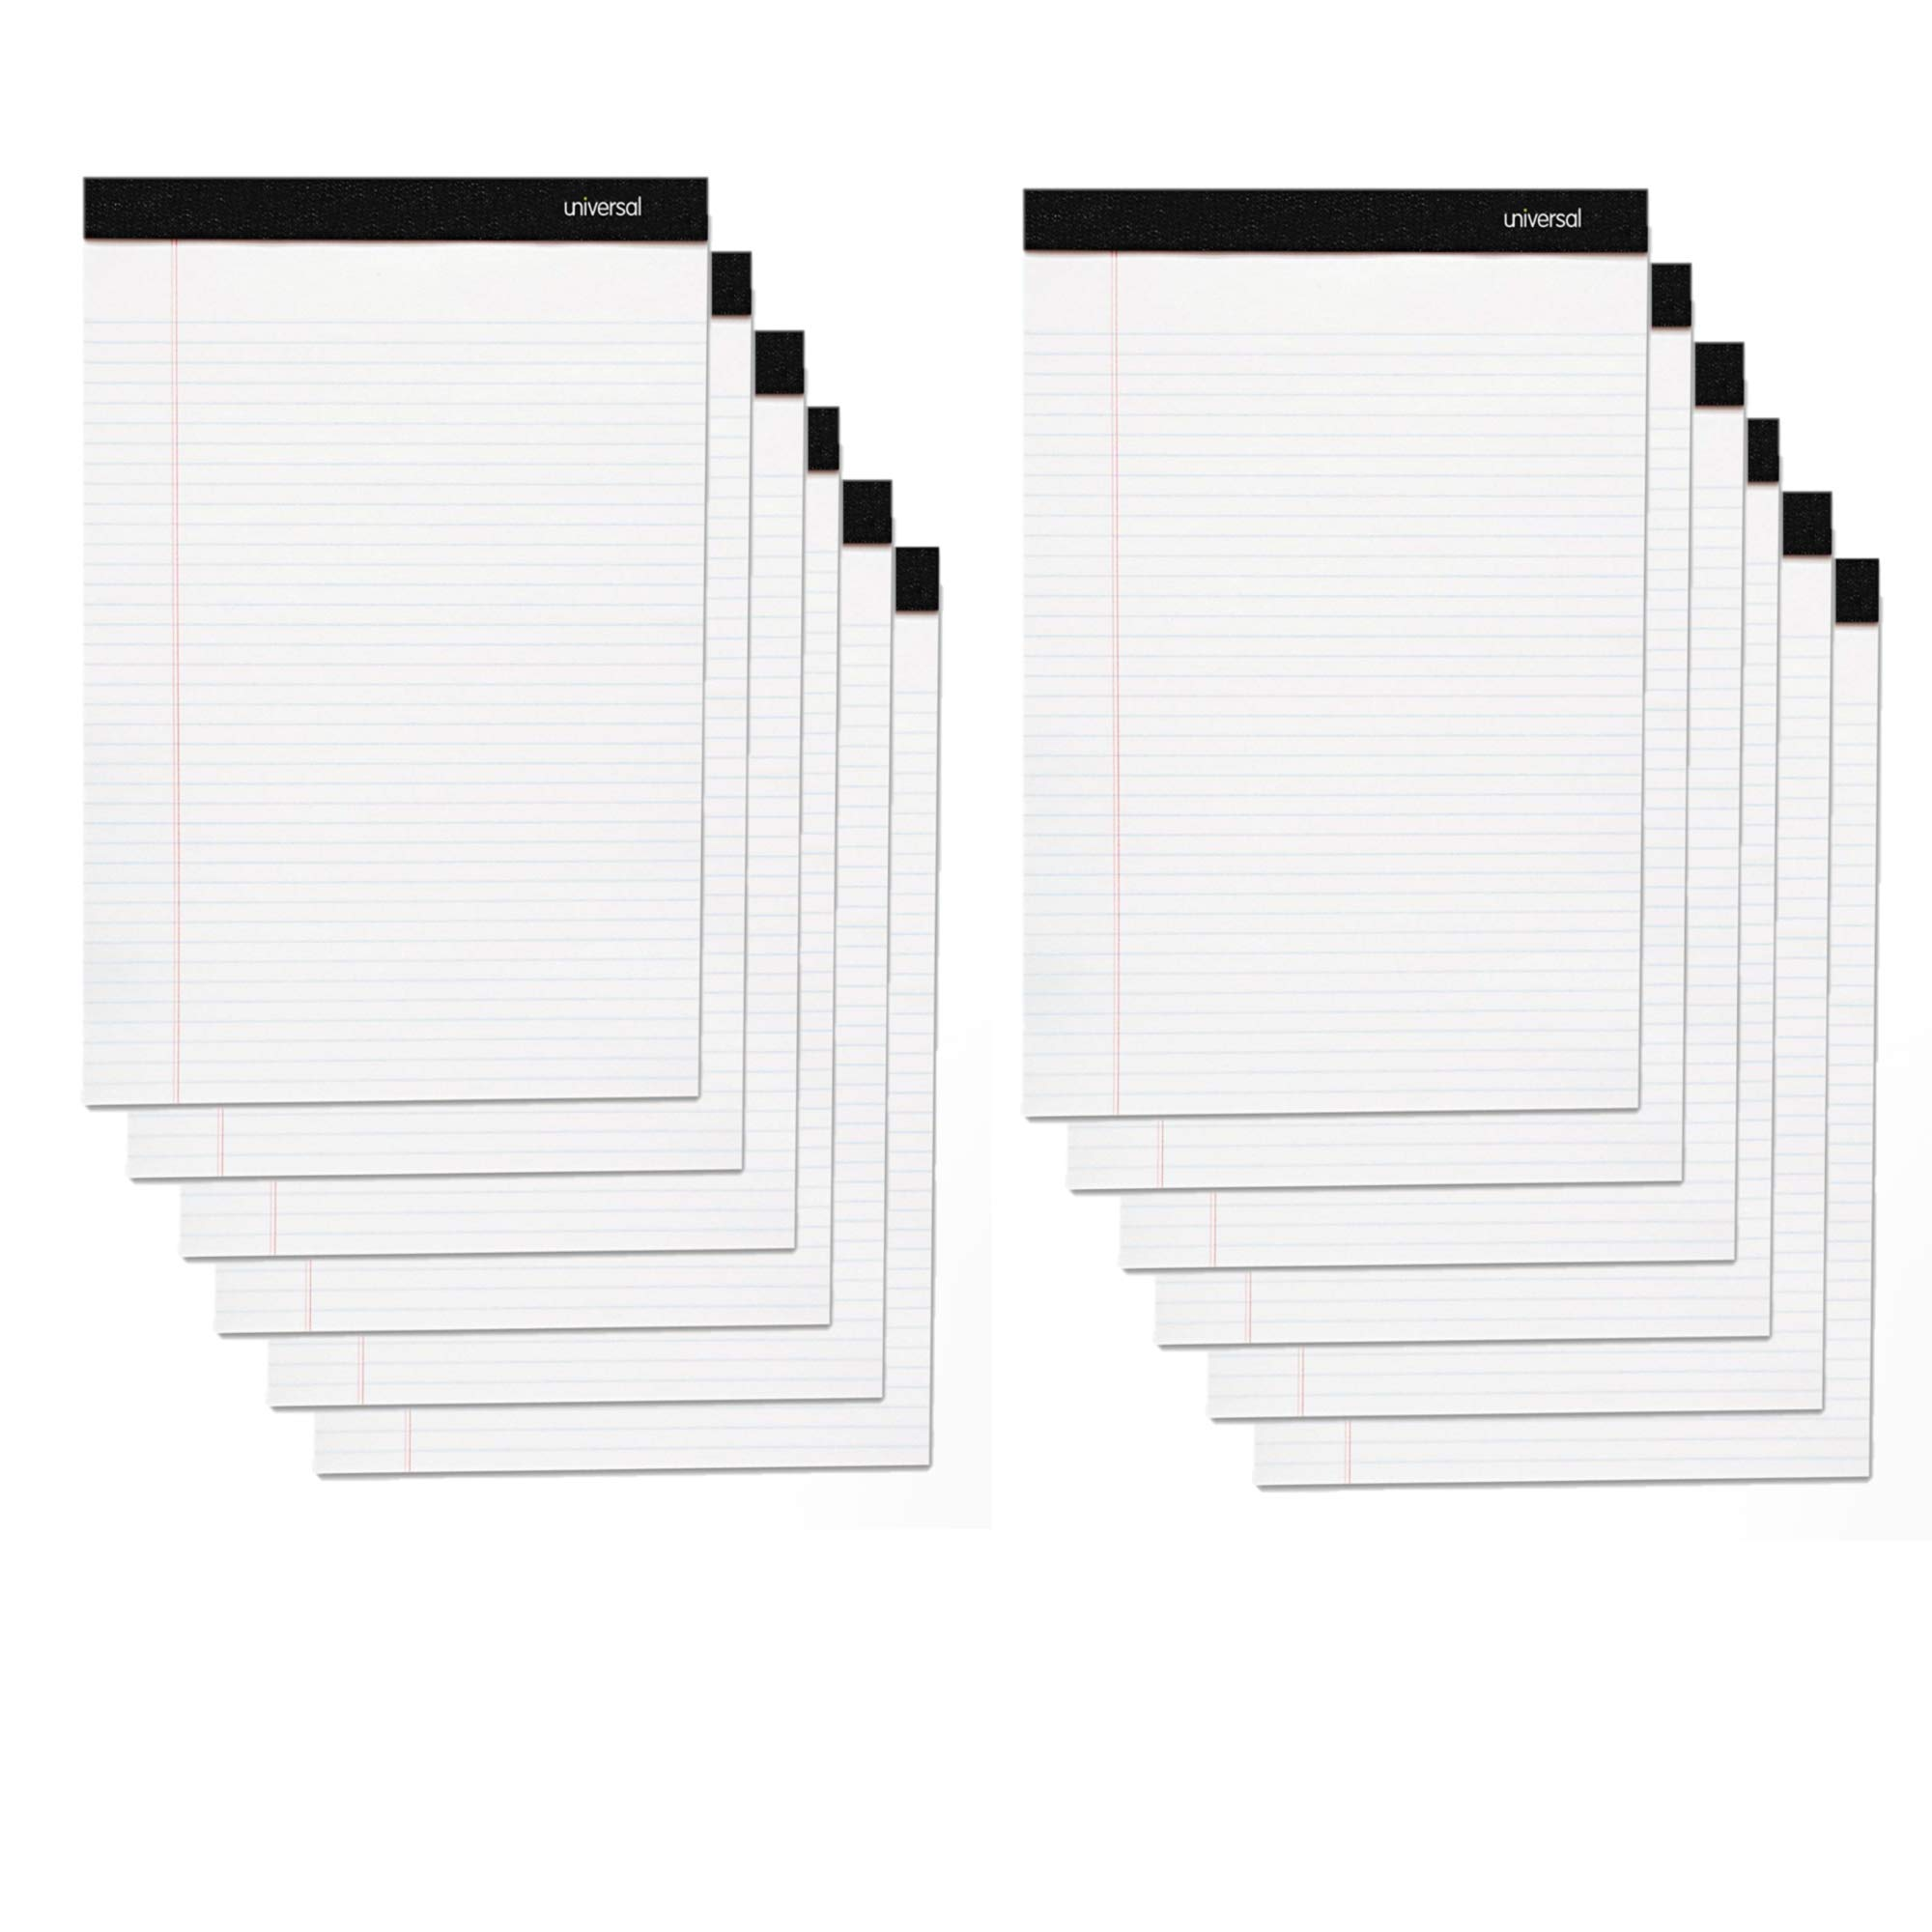 Universal 30630 Premium Ruled Writing Pads, White, 8 1/2 x 11, Legal/Wide, 50 Sheets (12) by Universal One